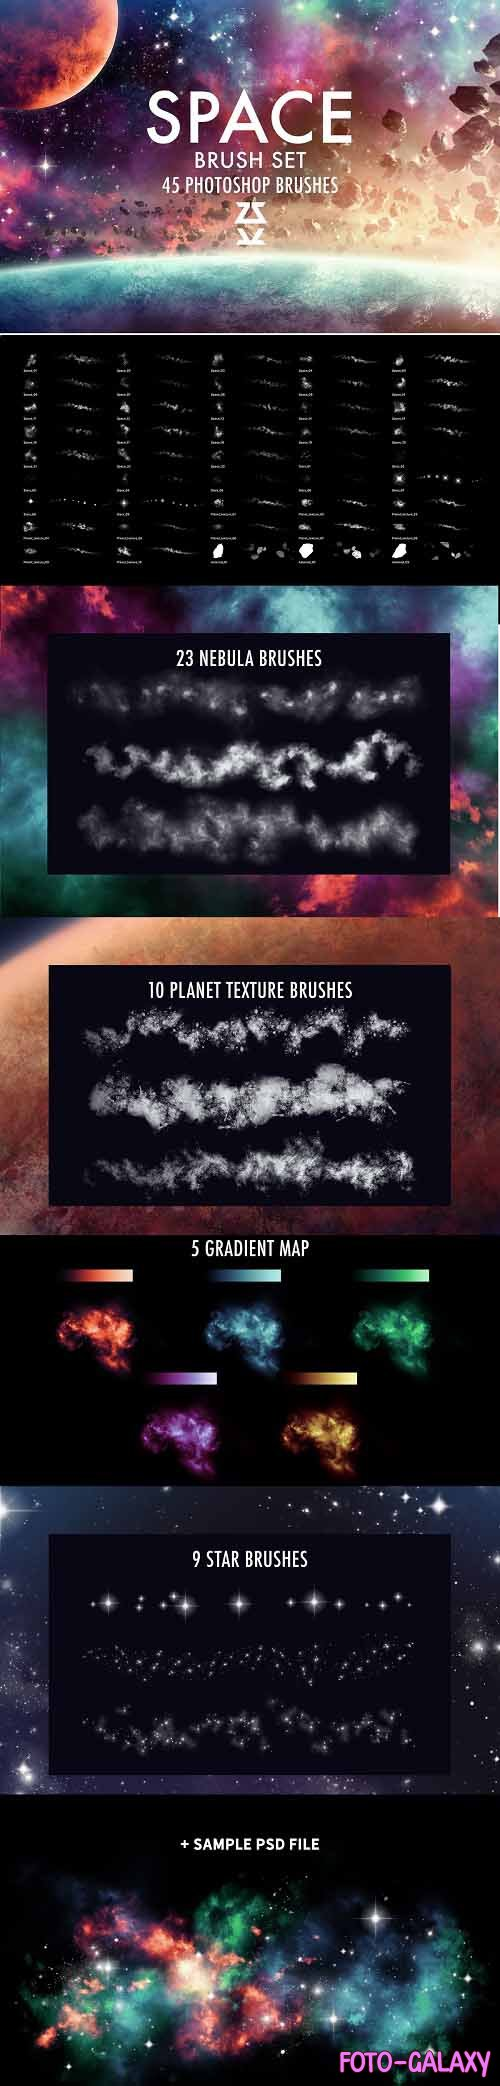 Space Brush Set - 5638938